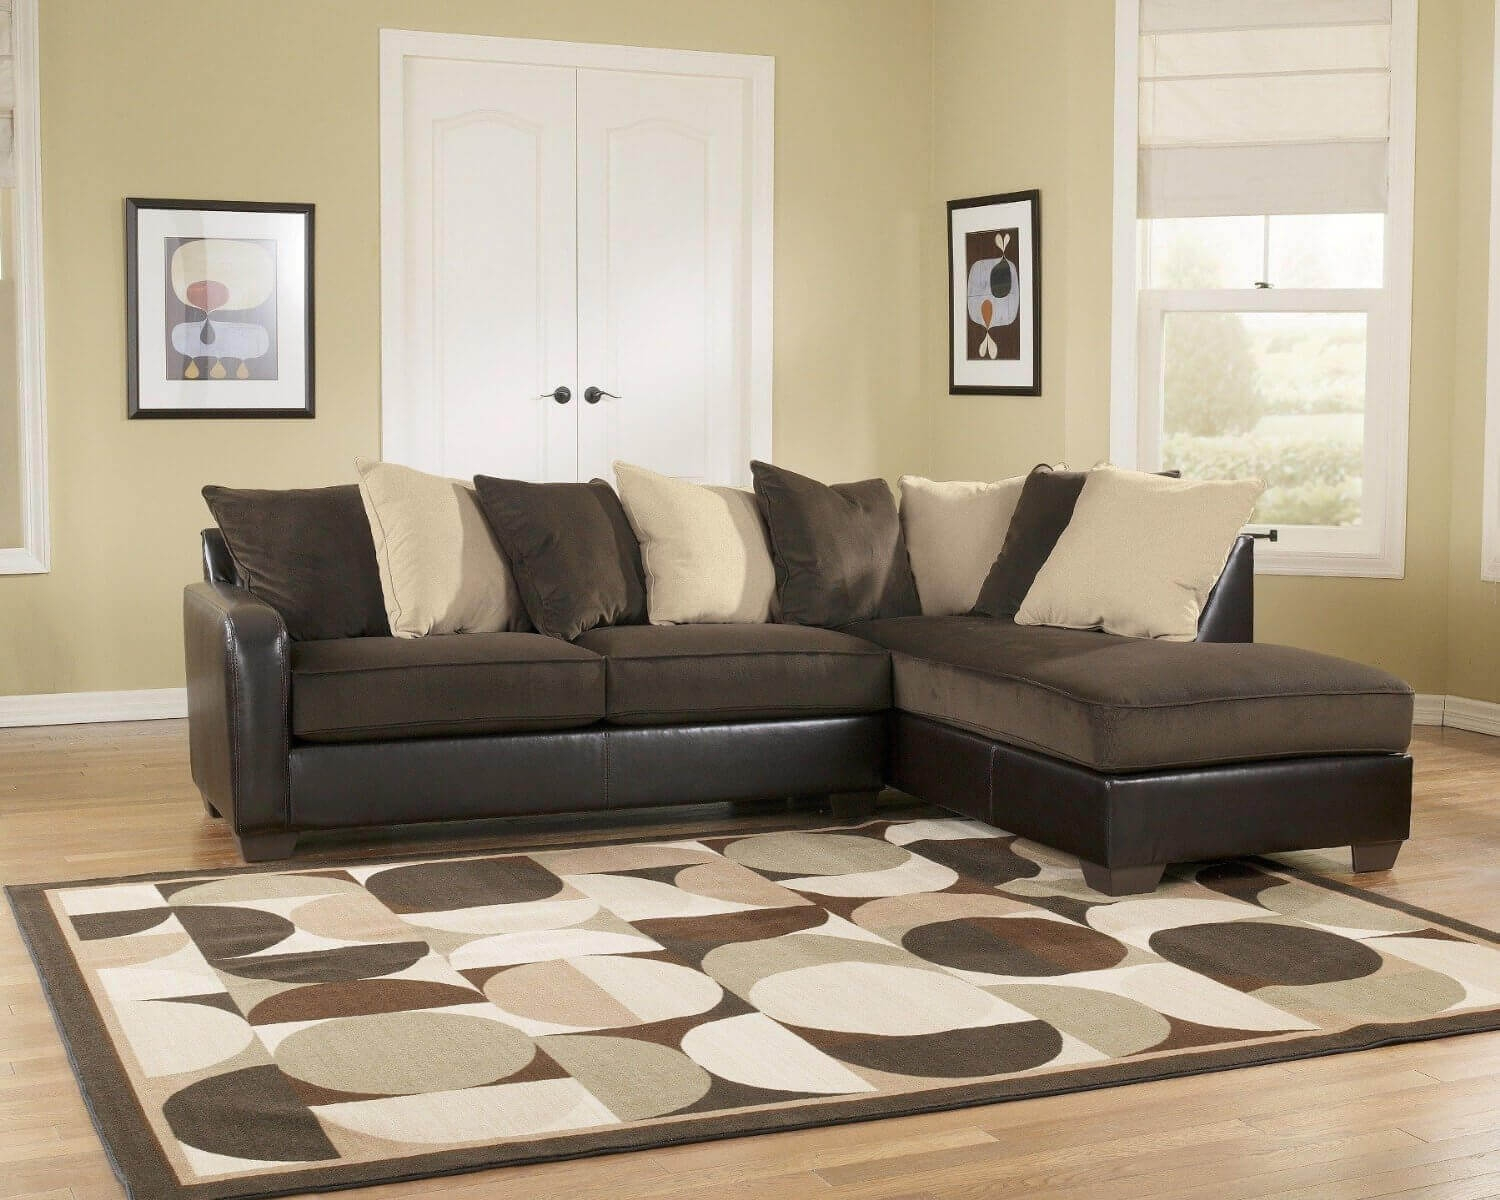 100 Beautiful Sectional Sofas Under 1000 Inside Chocolate Brown Sectional Sofa (Image 1 of 15)